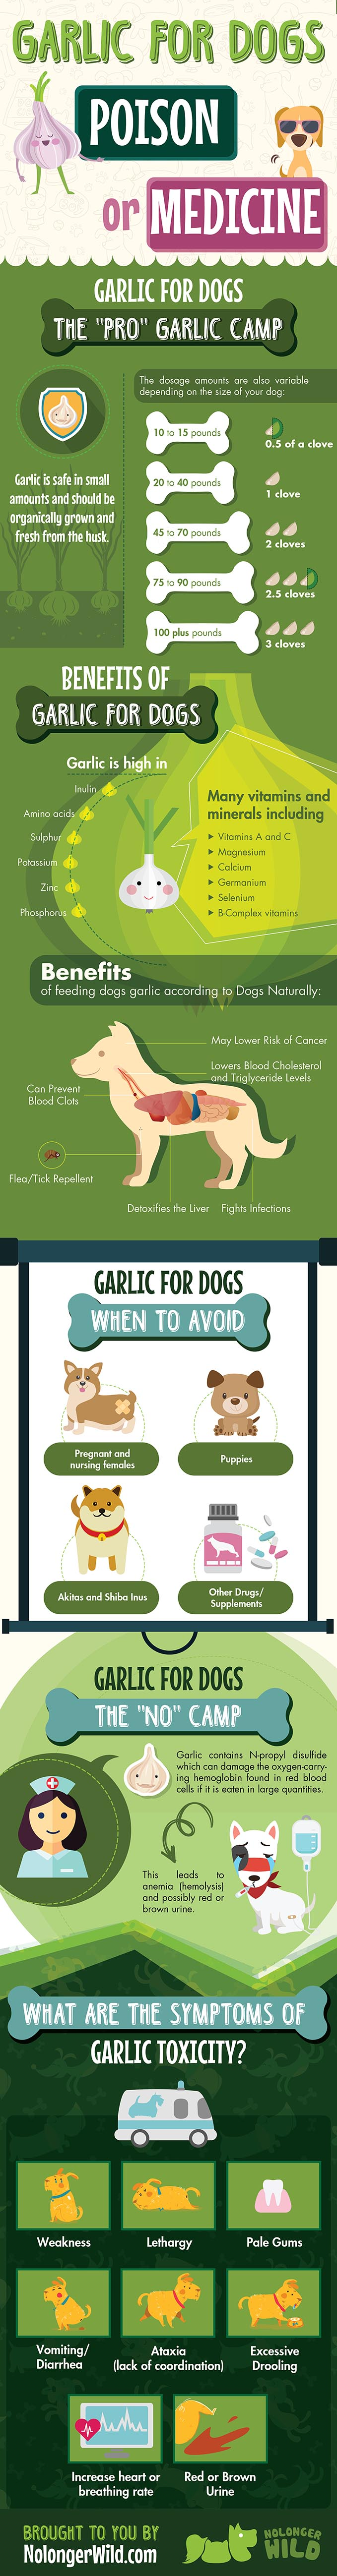 Should Your Dog Be Eating Garlic - Infographic